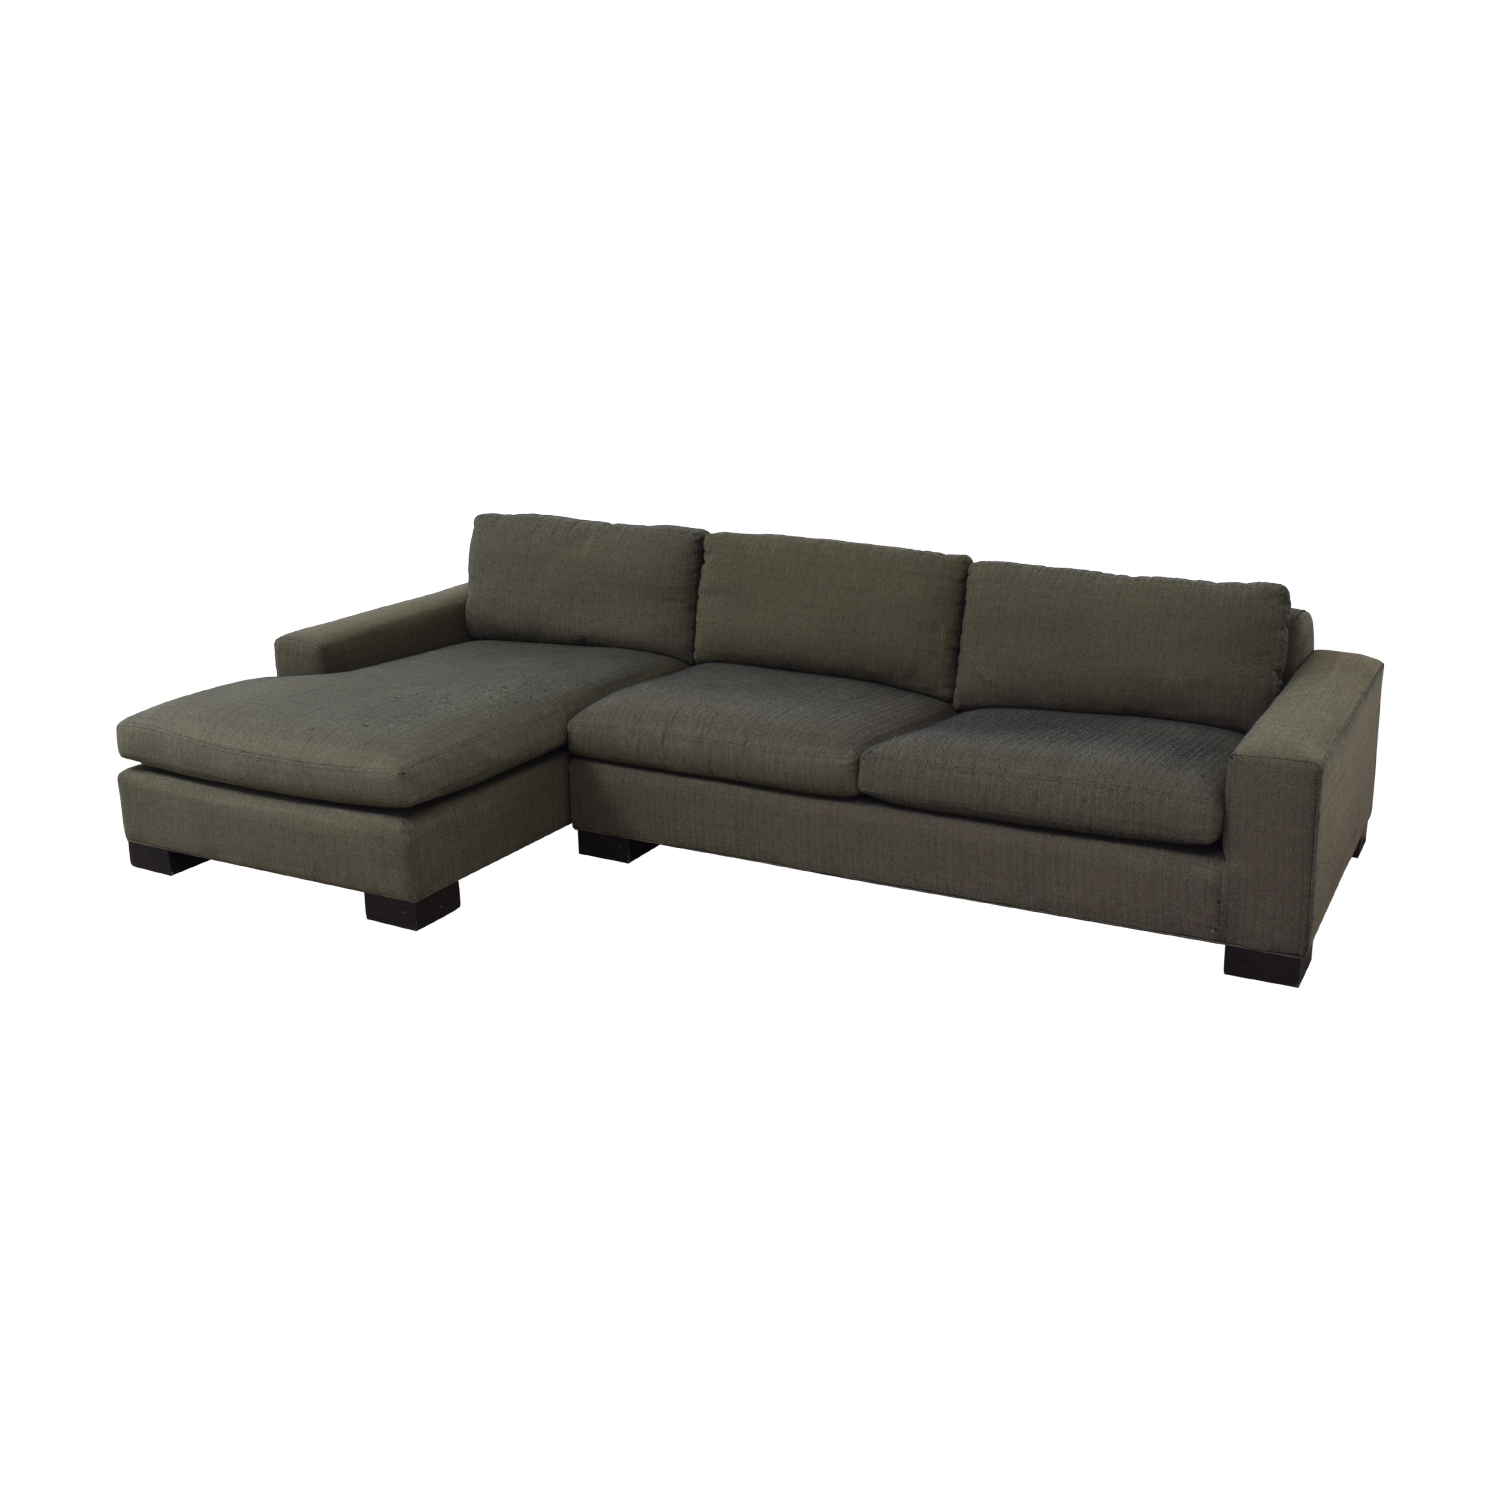 Room & Board Room & Board Brown Chaise Sectional discount